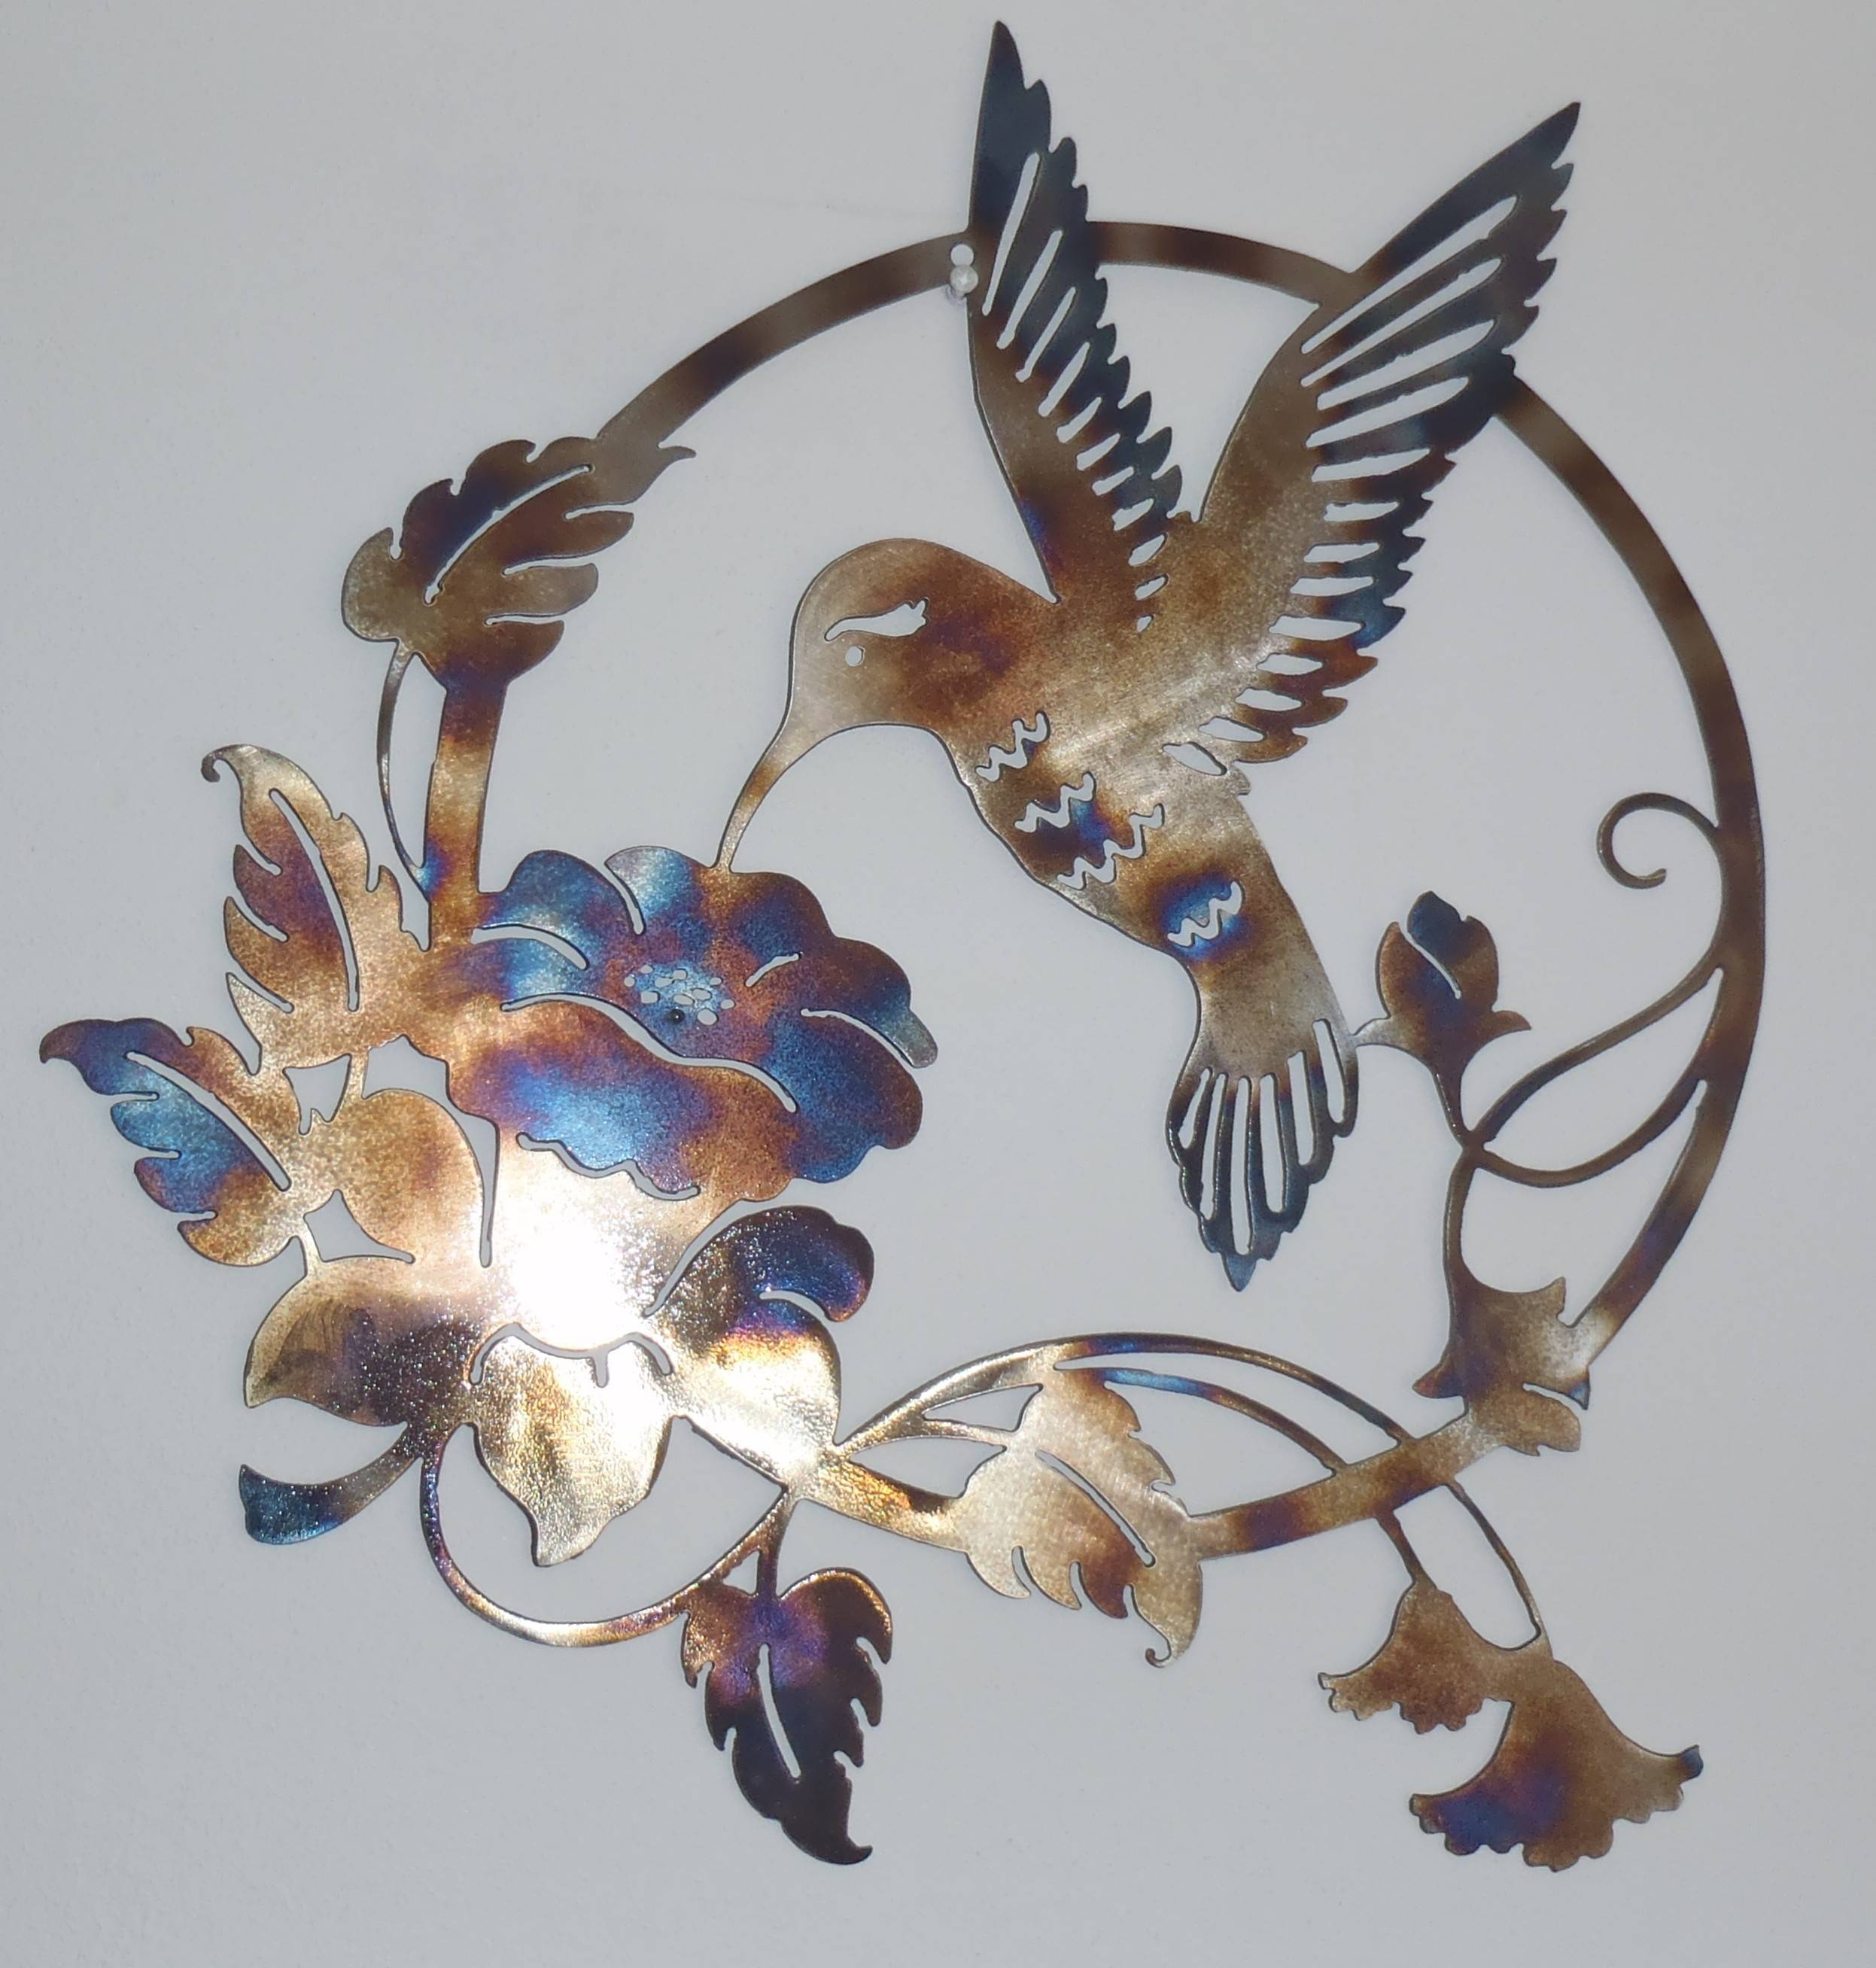 Hummingbird Decor | Iron Blog Inside Most Up To Date Flower Metal Wall Art Decor (View 17 of 20)